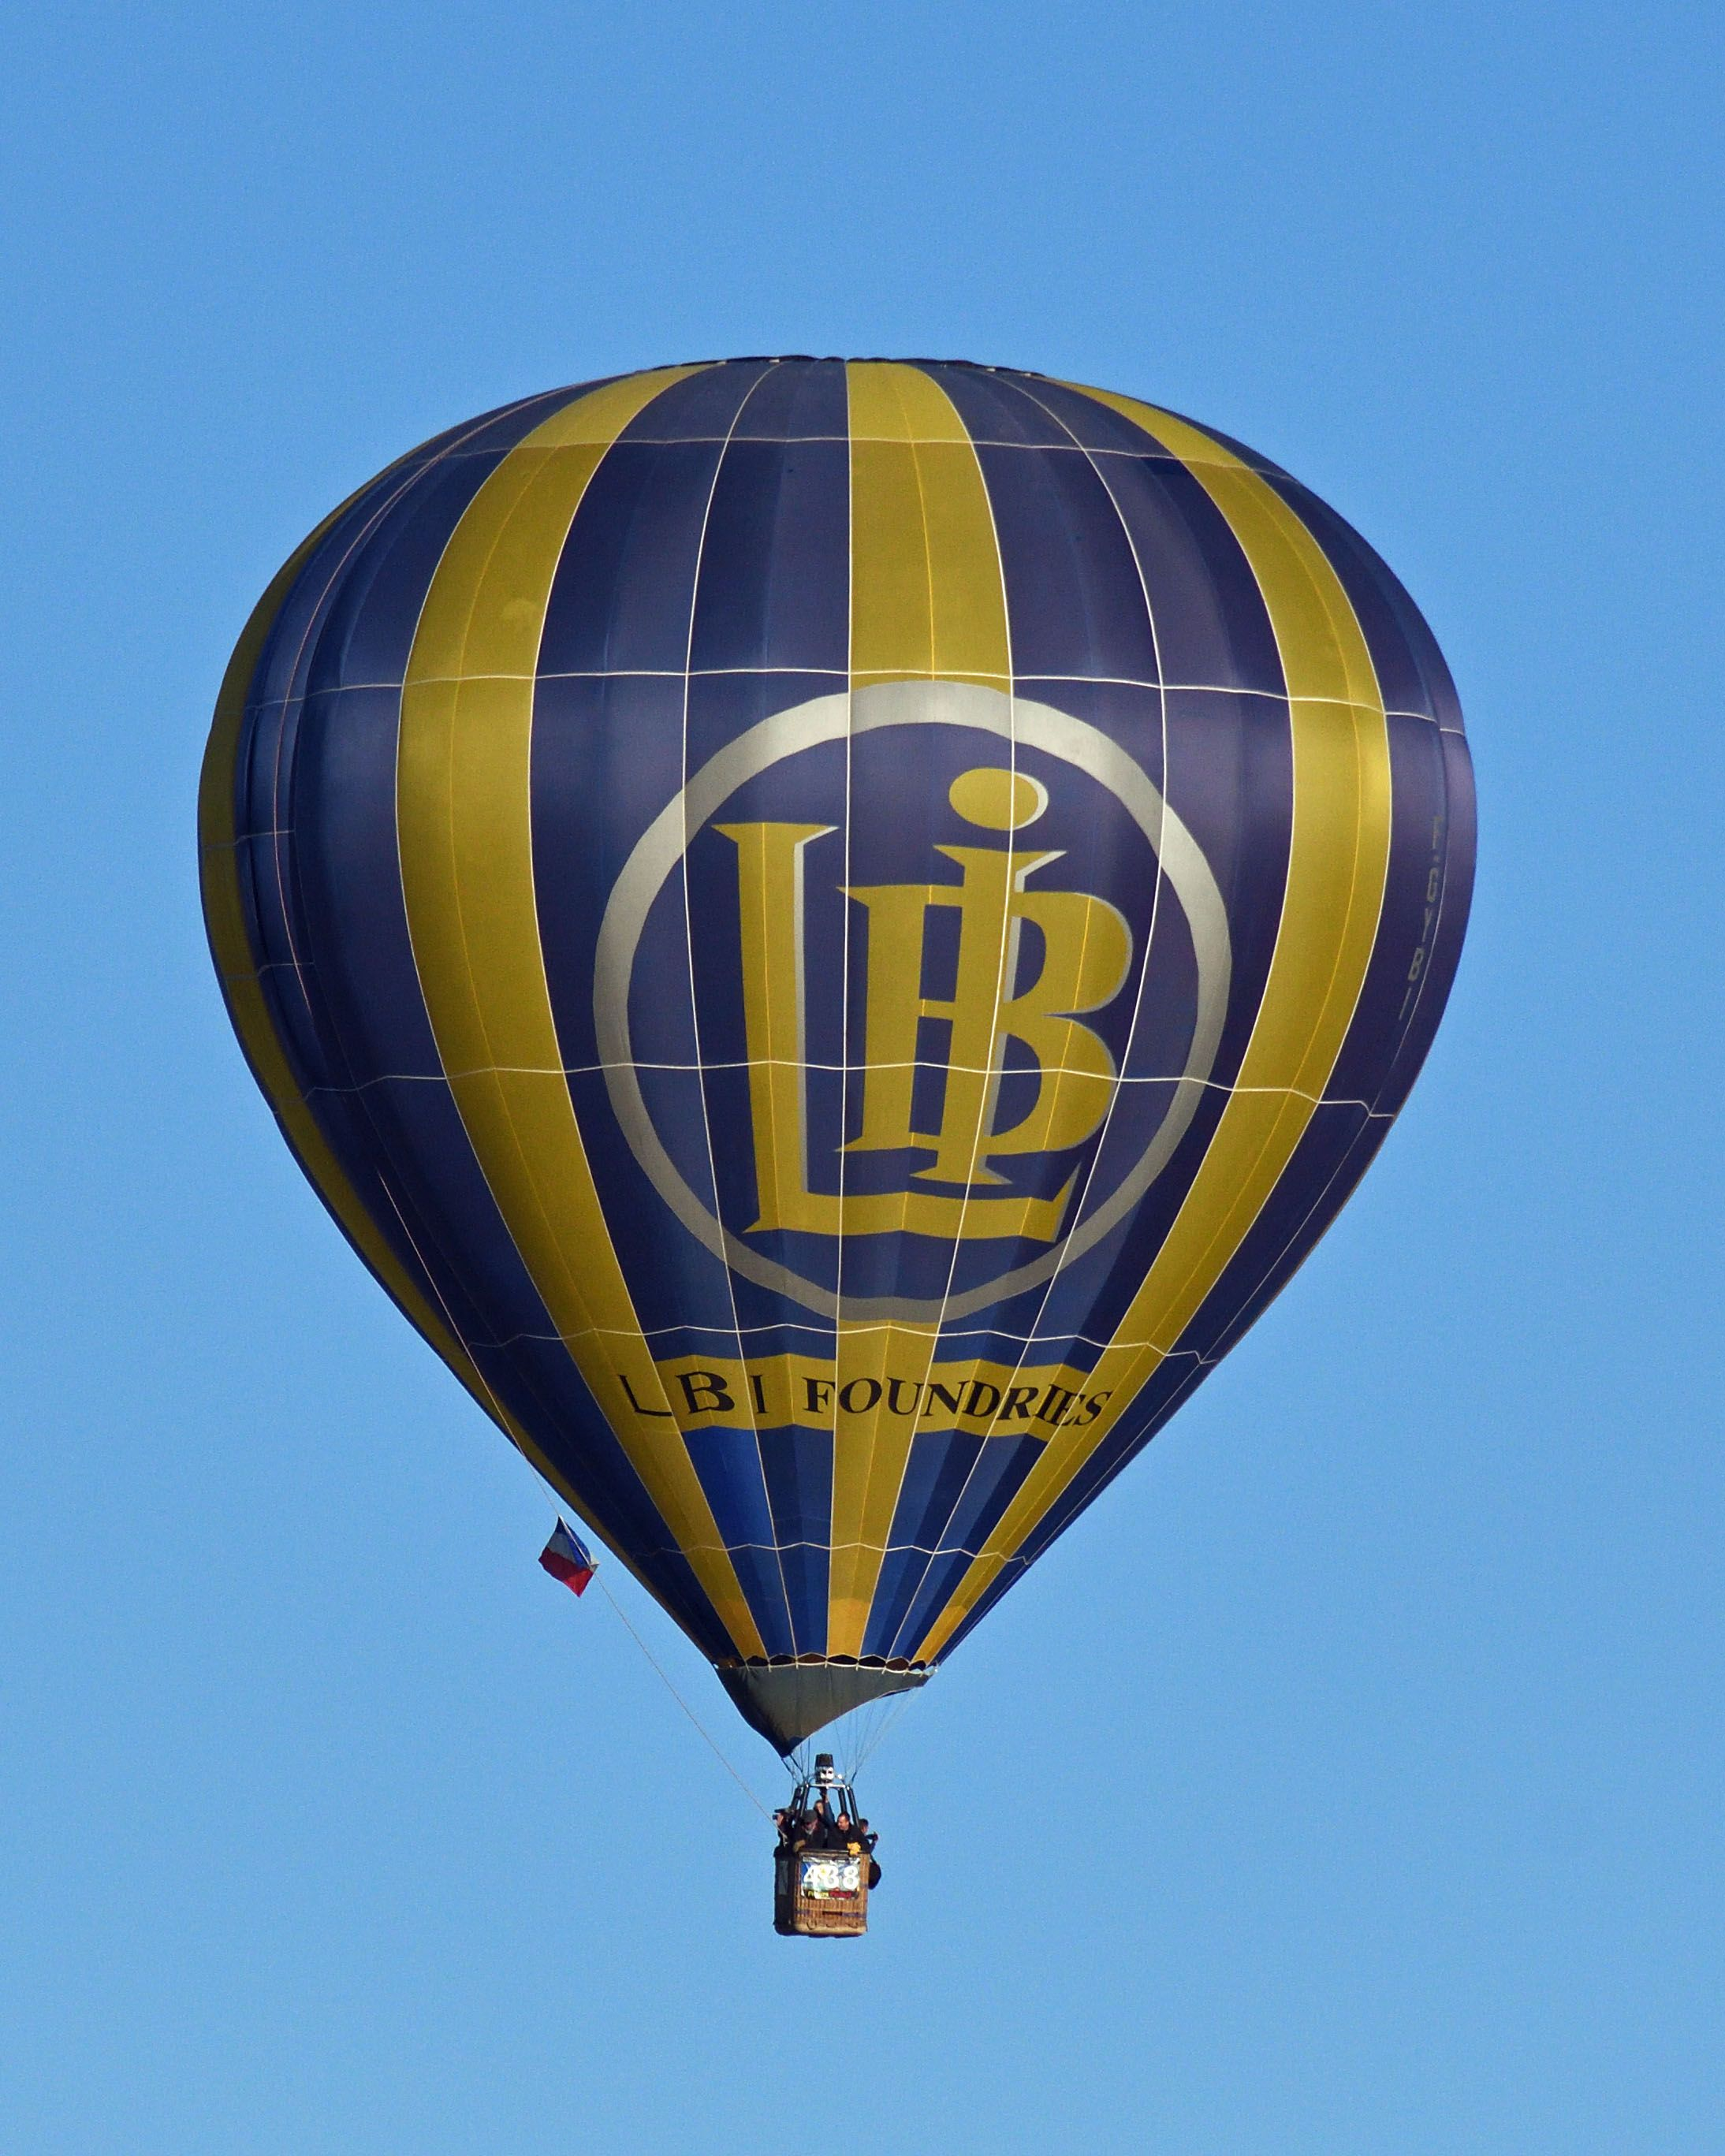 Albuquerque International Balloon Fiesta in 2020 Balloon